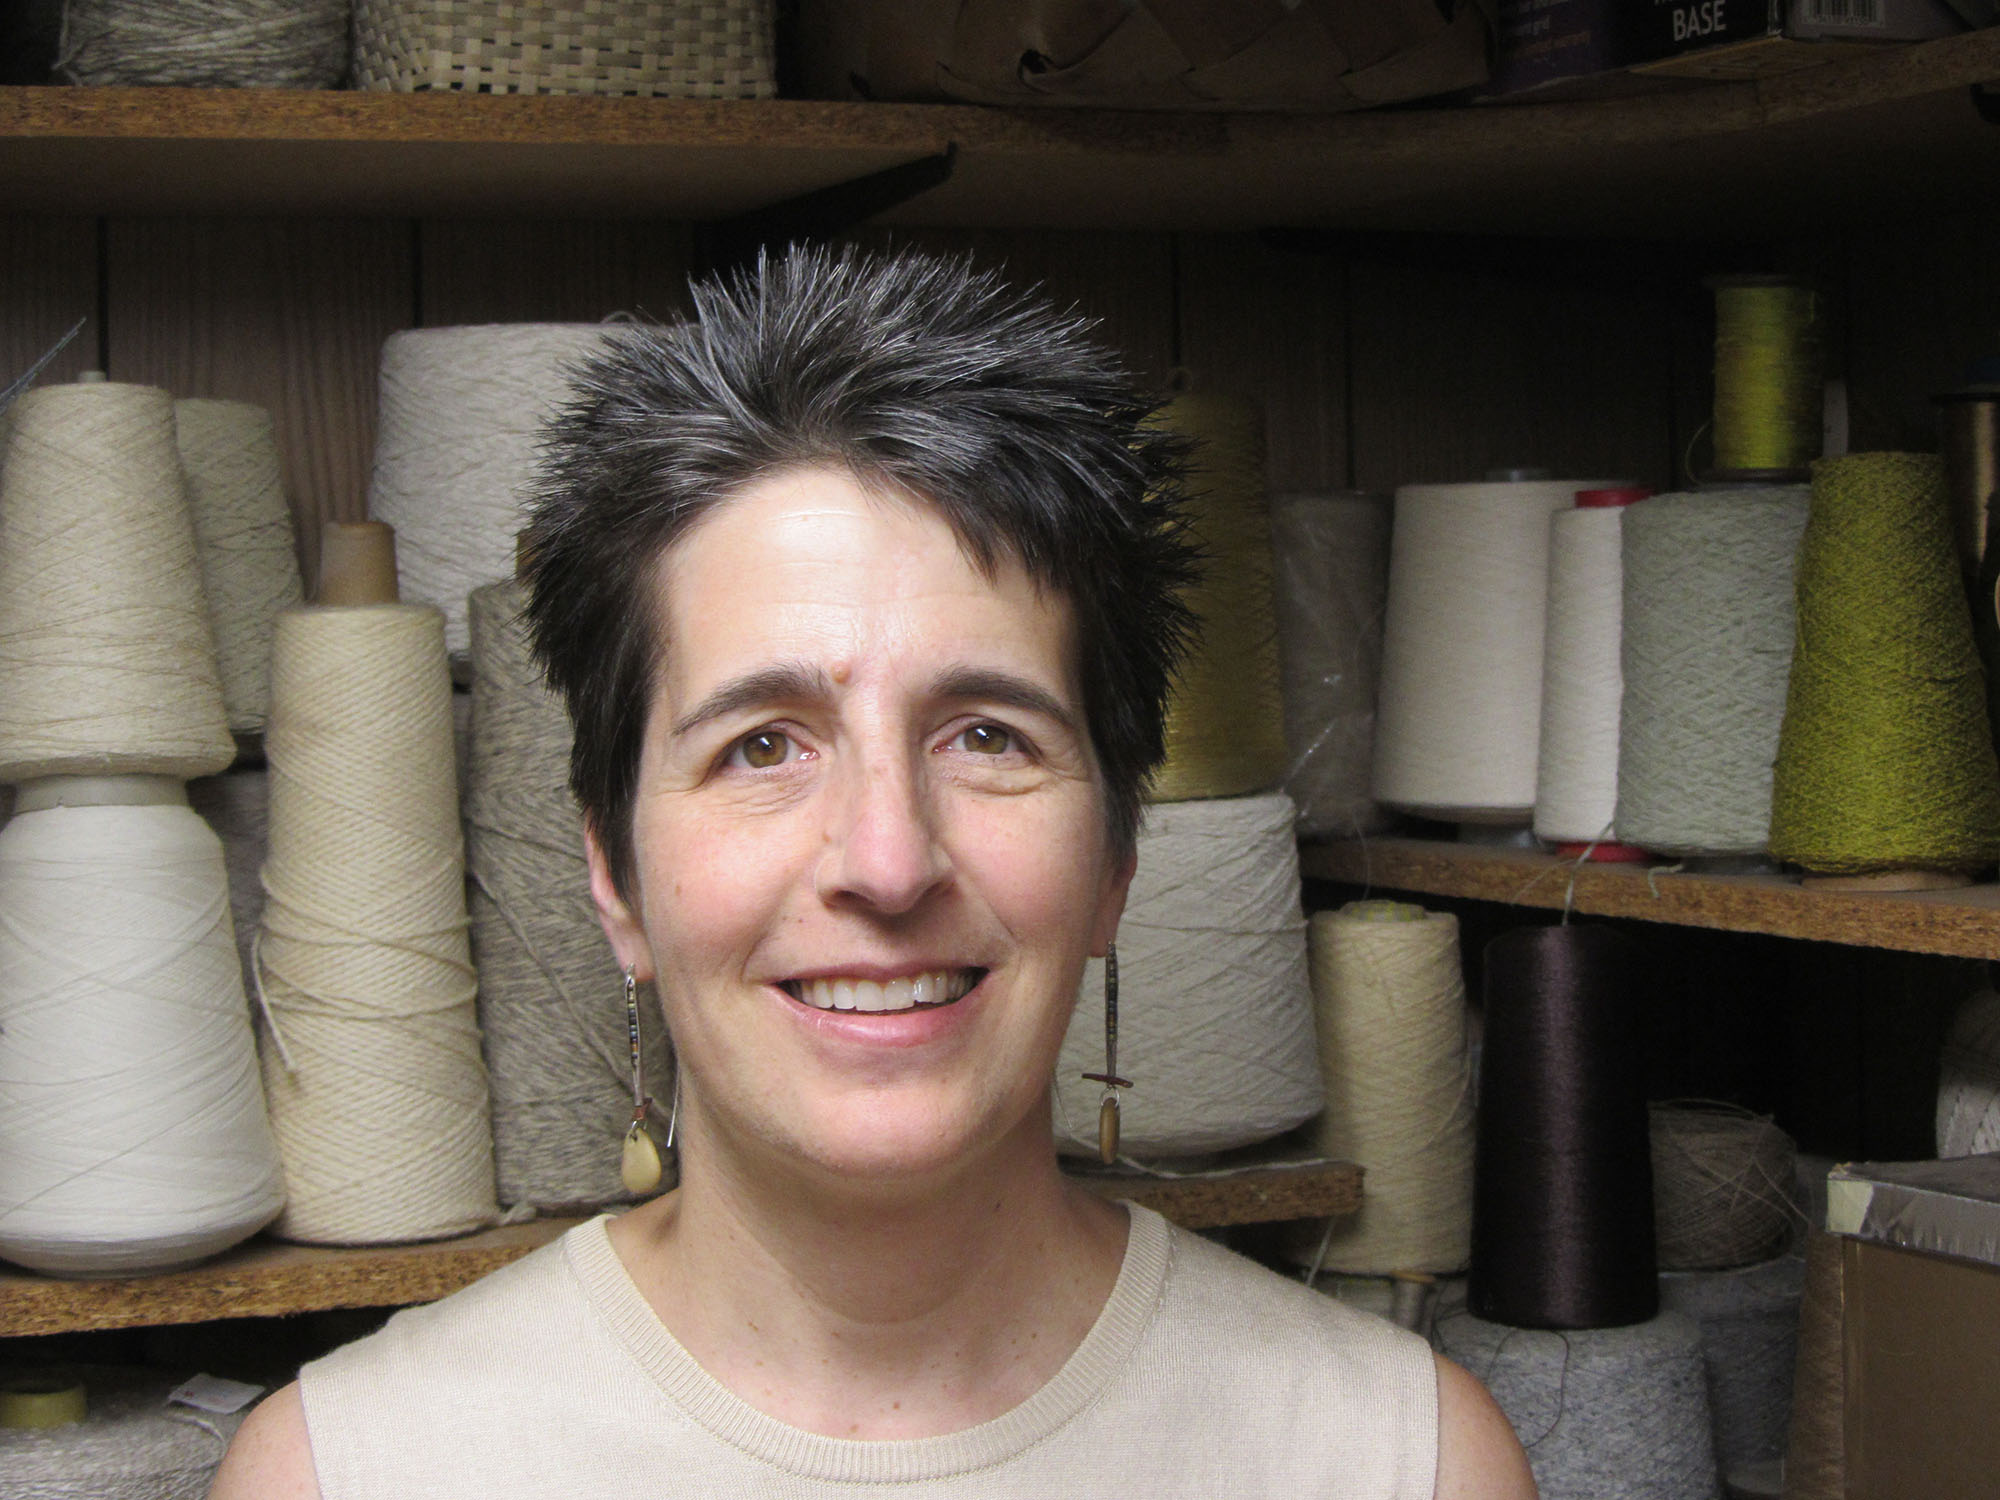 Q&A with Marcia Weiss, Director, Textile Design